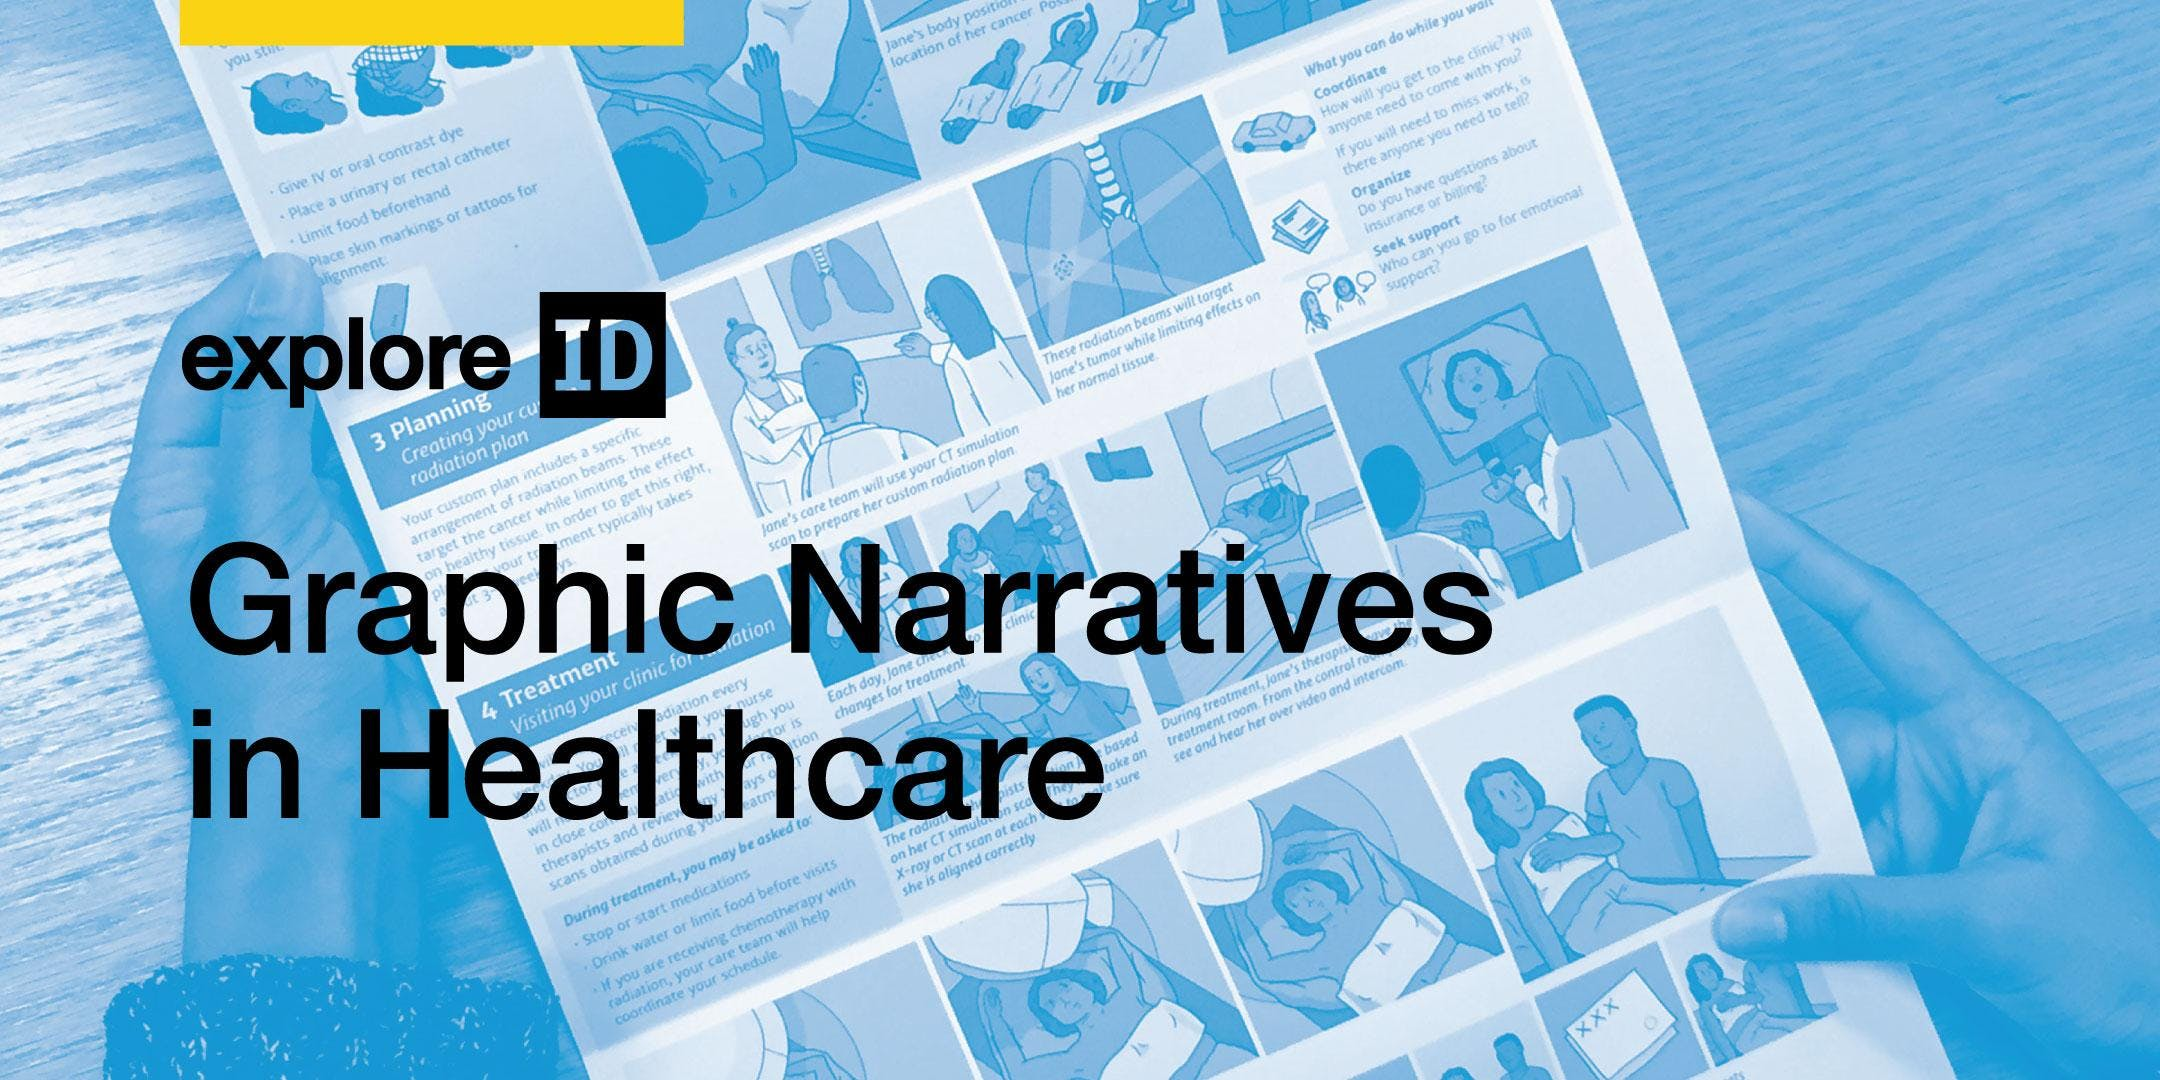 exploreID: Graphic Narratives in Healthcare